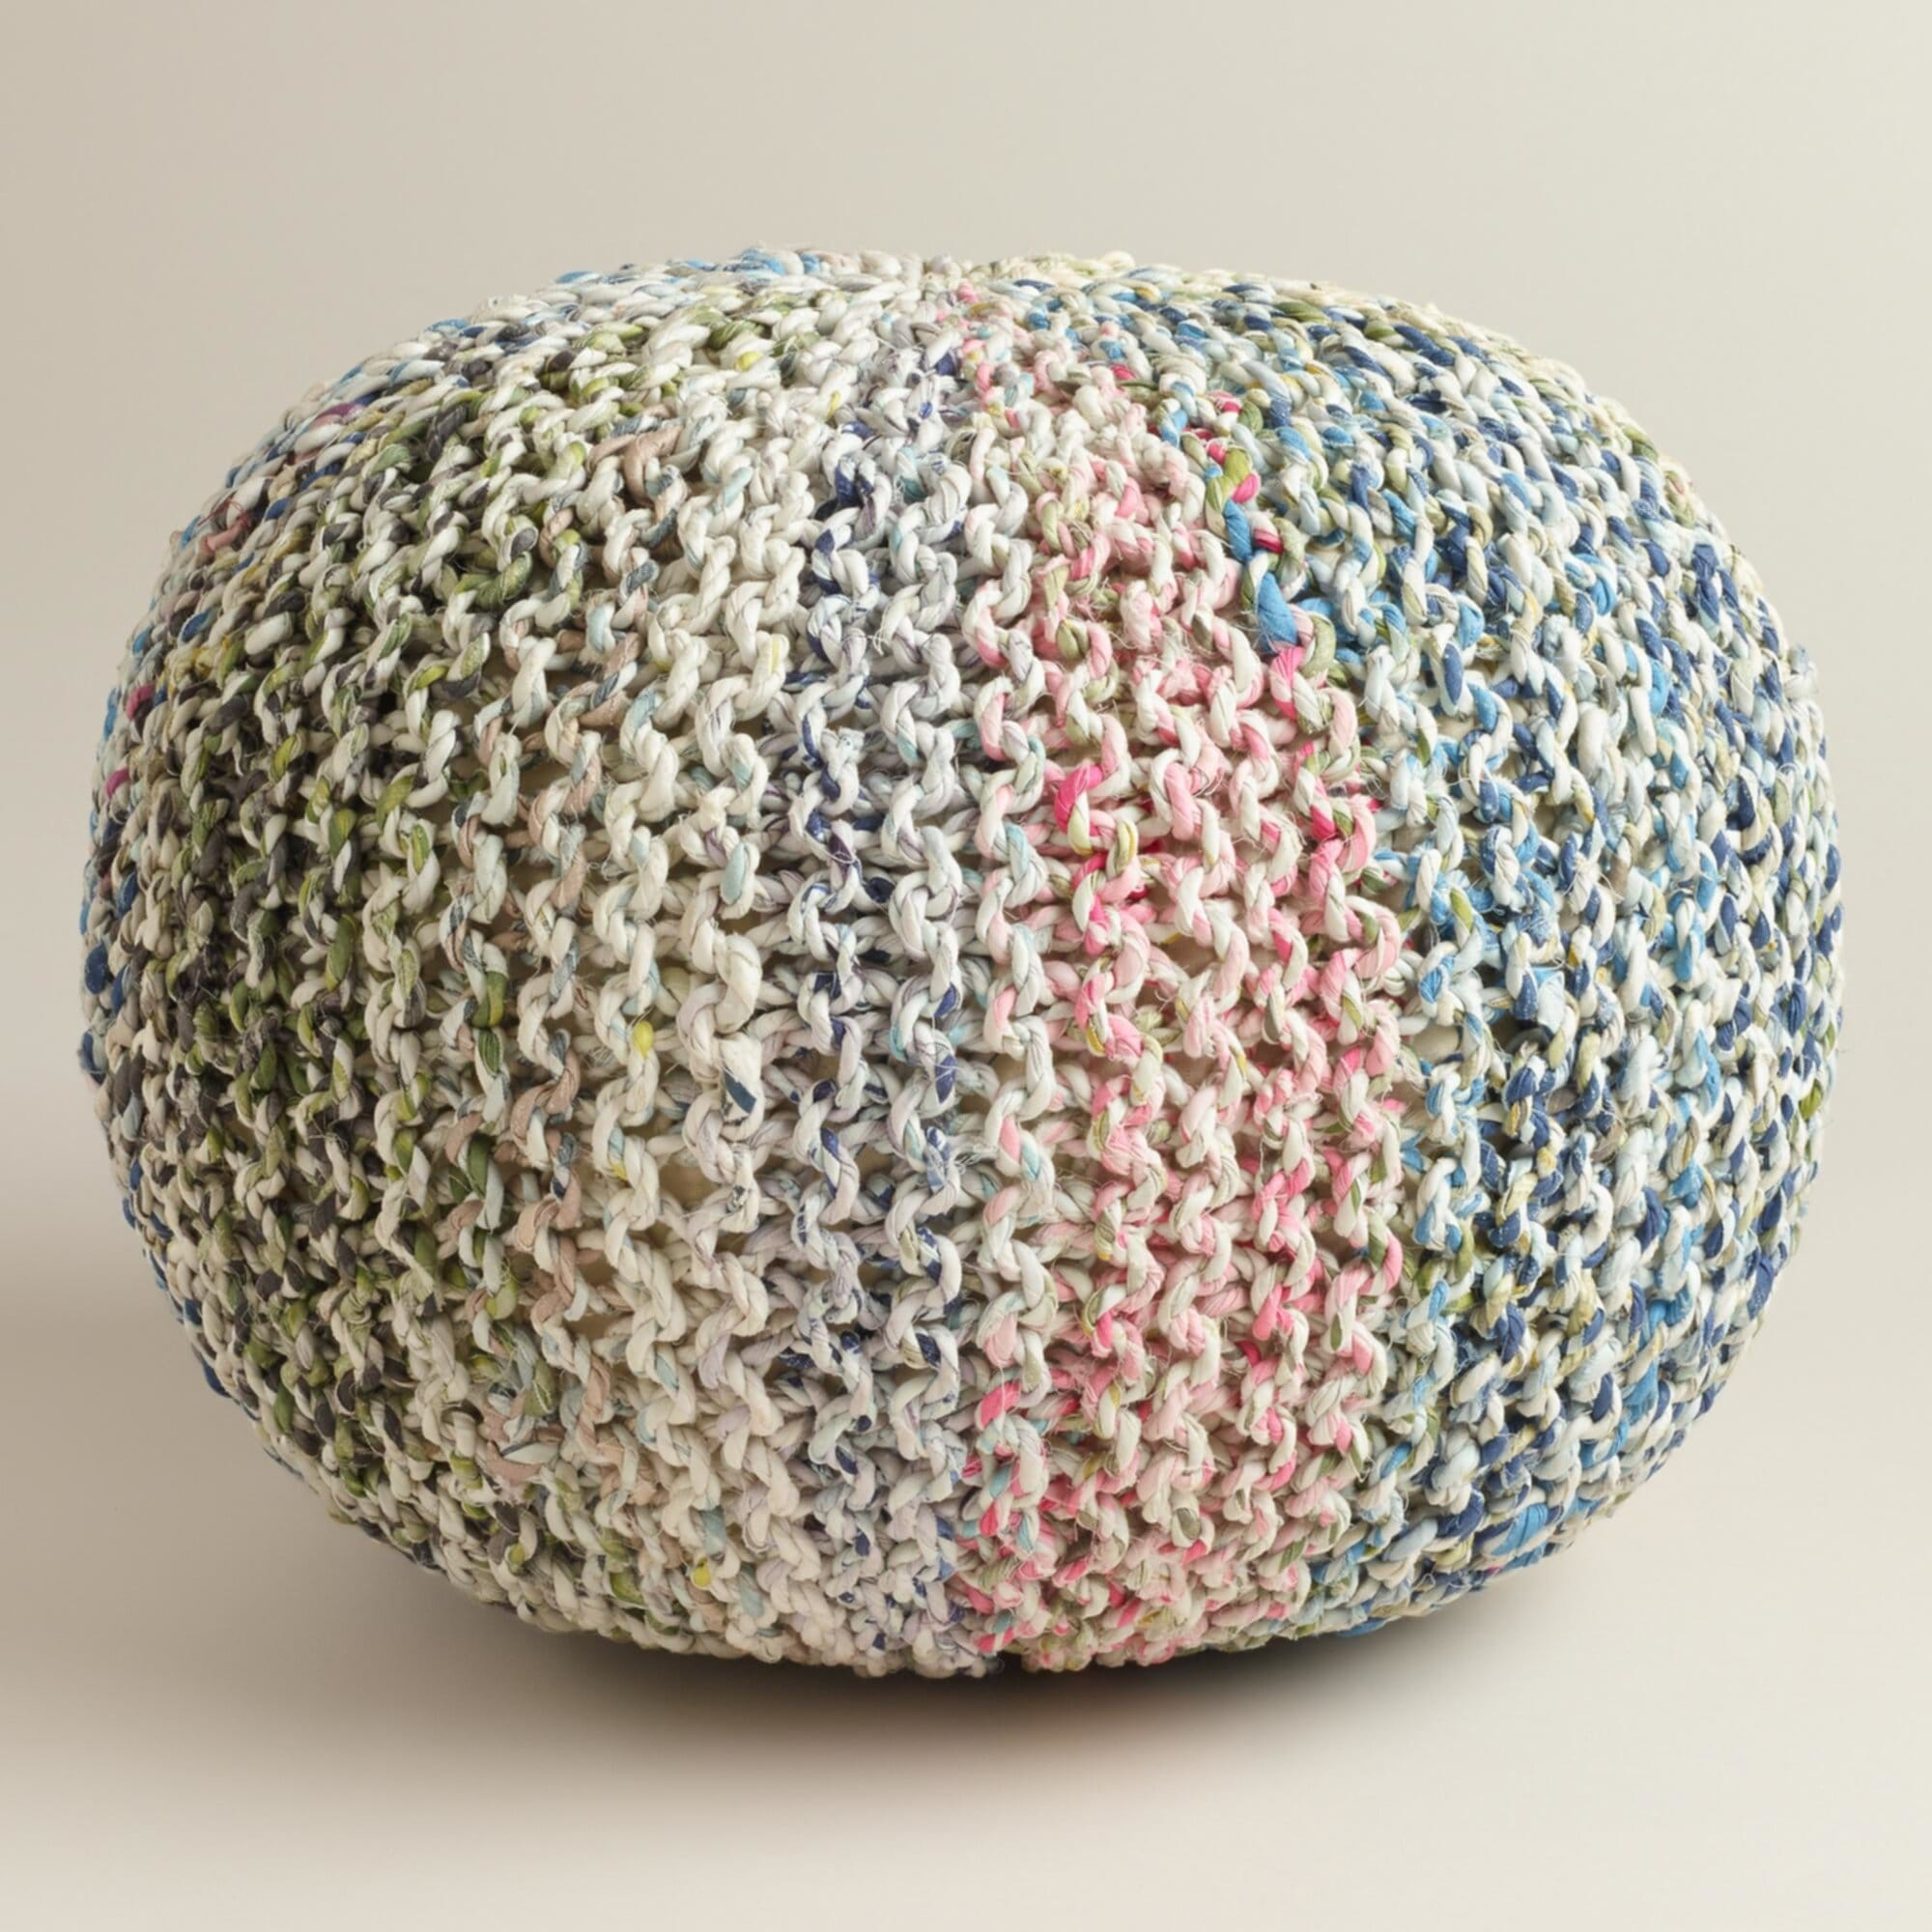 How To Make A Crocheted Flower Knitted Pouf - Loccie ...